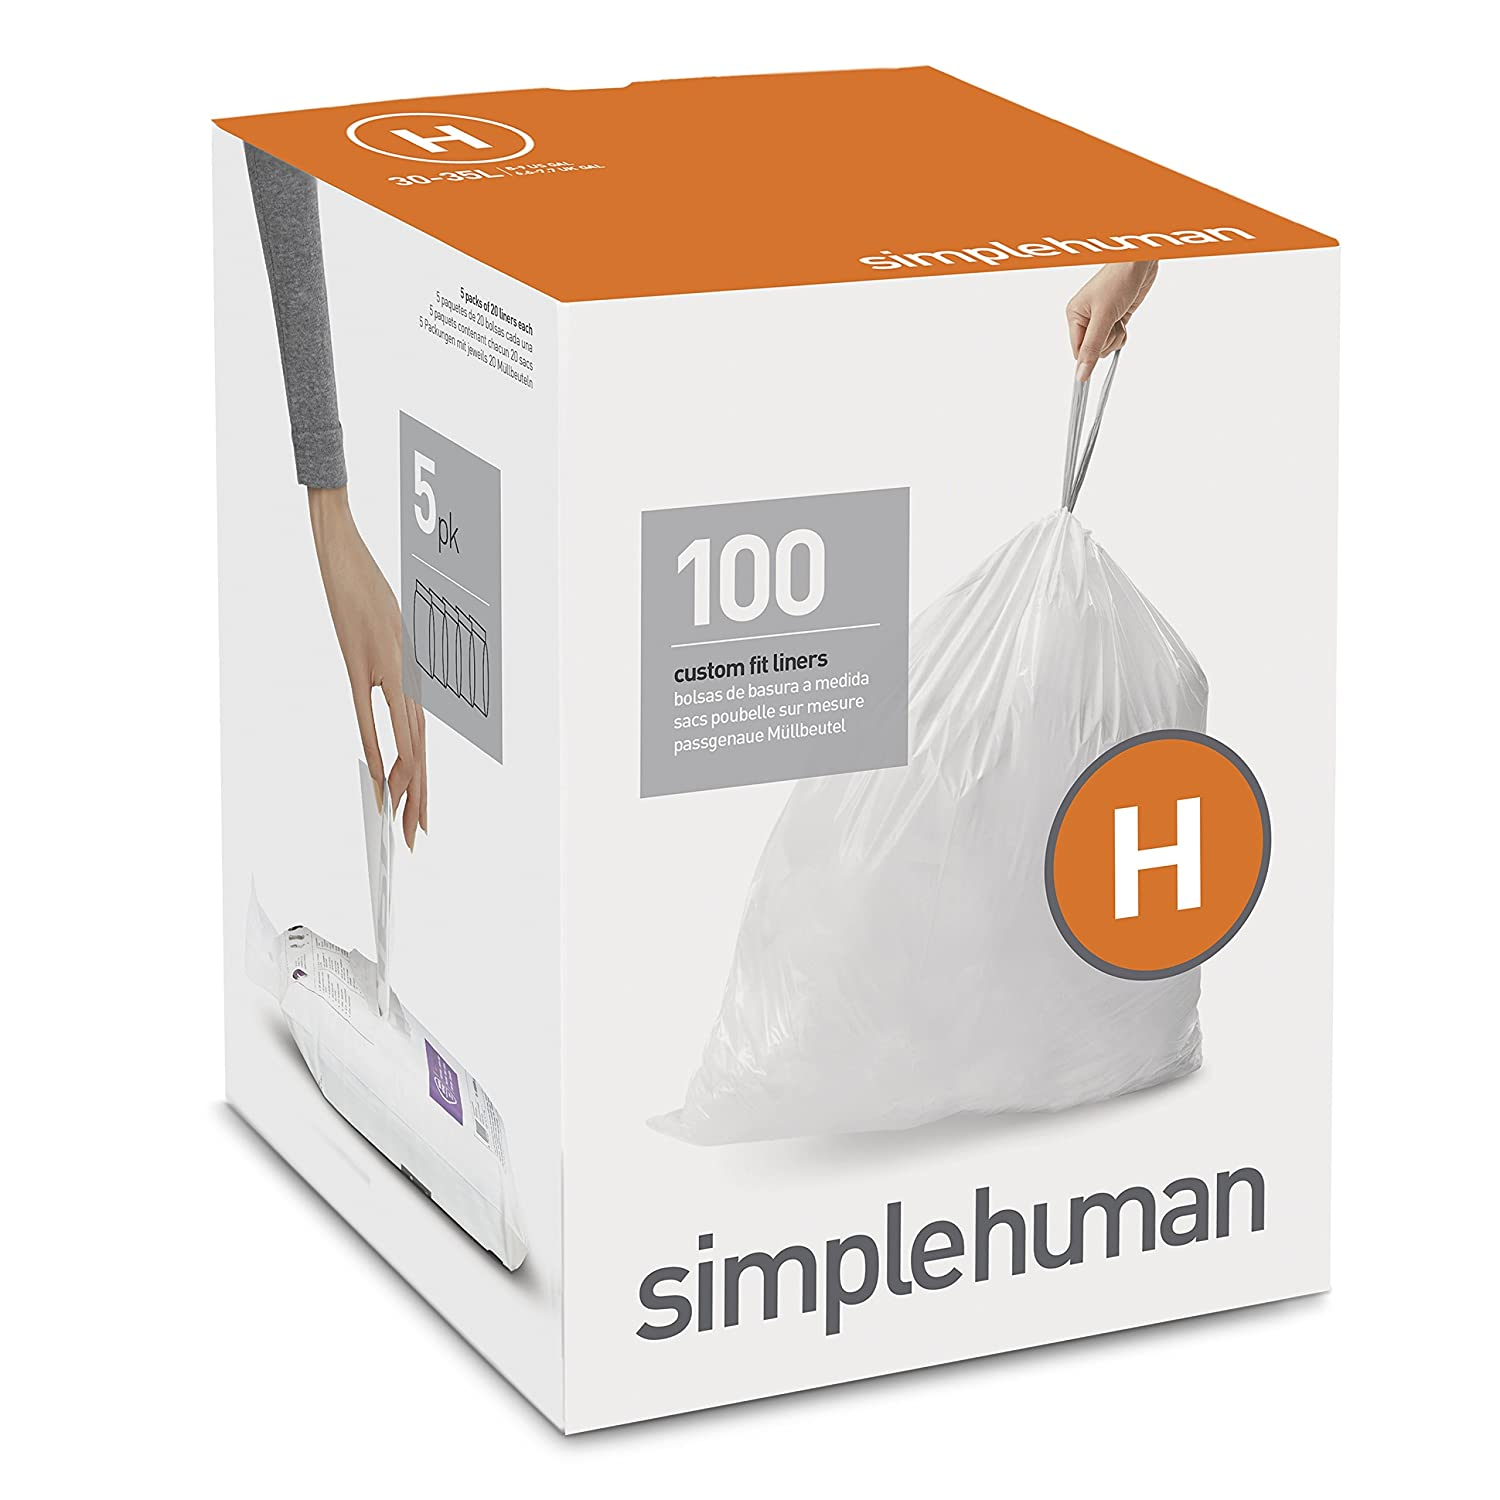 simplehuman Code H Custom Fit Drawstring Trash Bags, 30 - 35 Liter / 8 - 9 Gallon, 100-Count Box